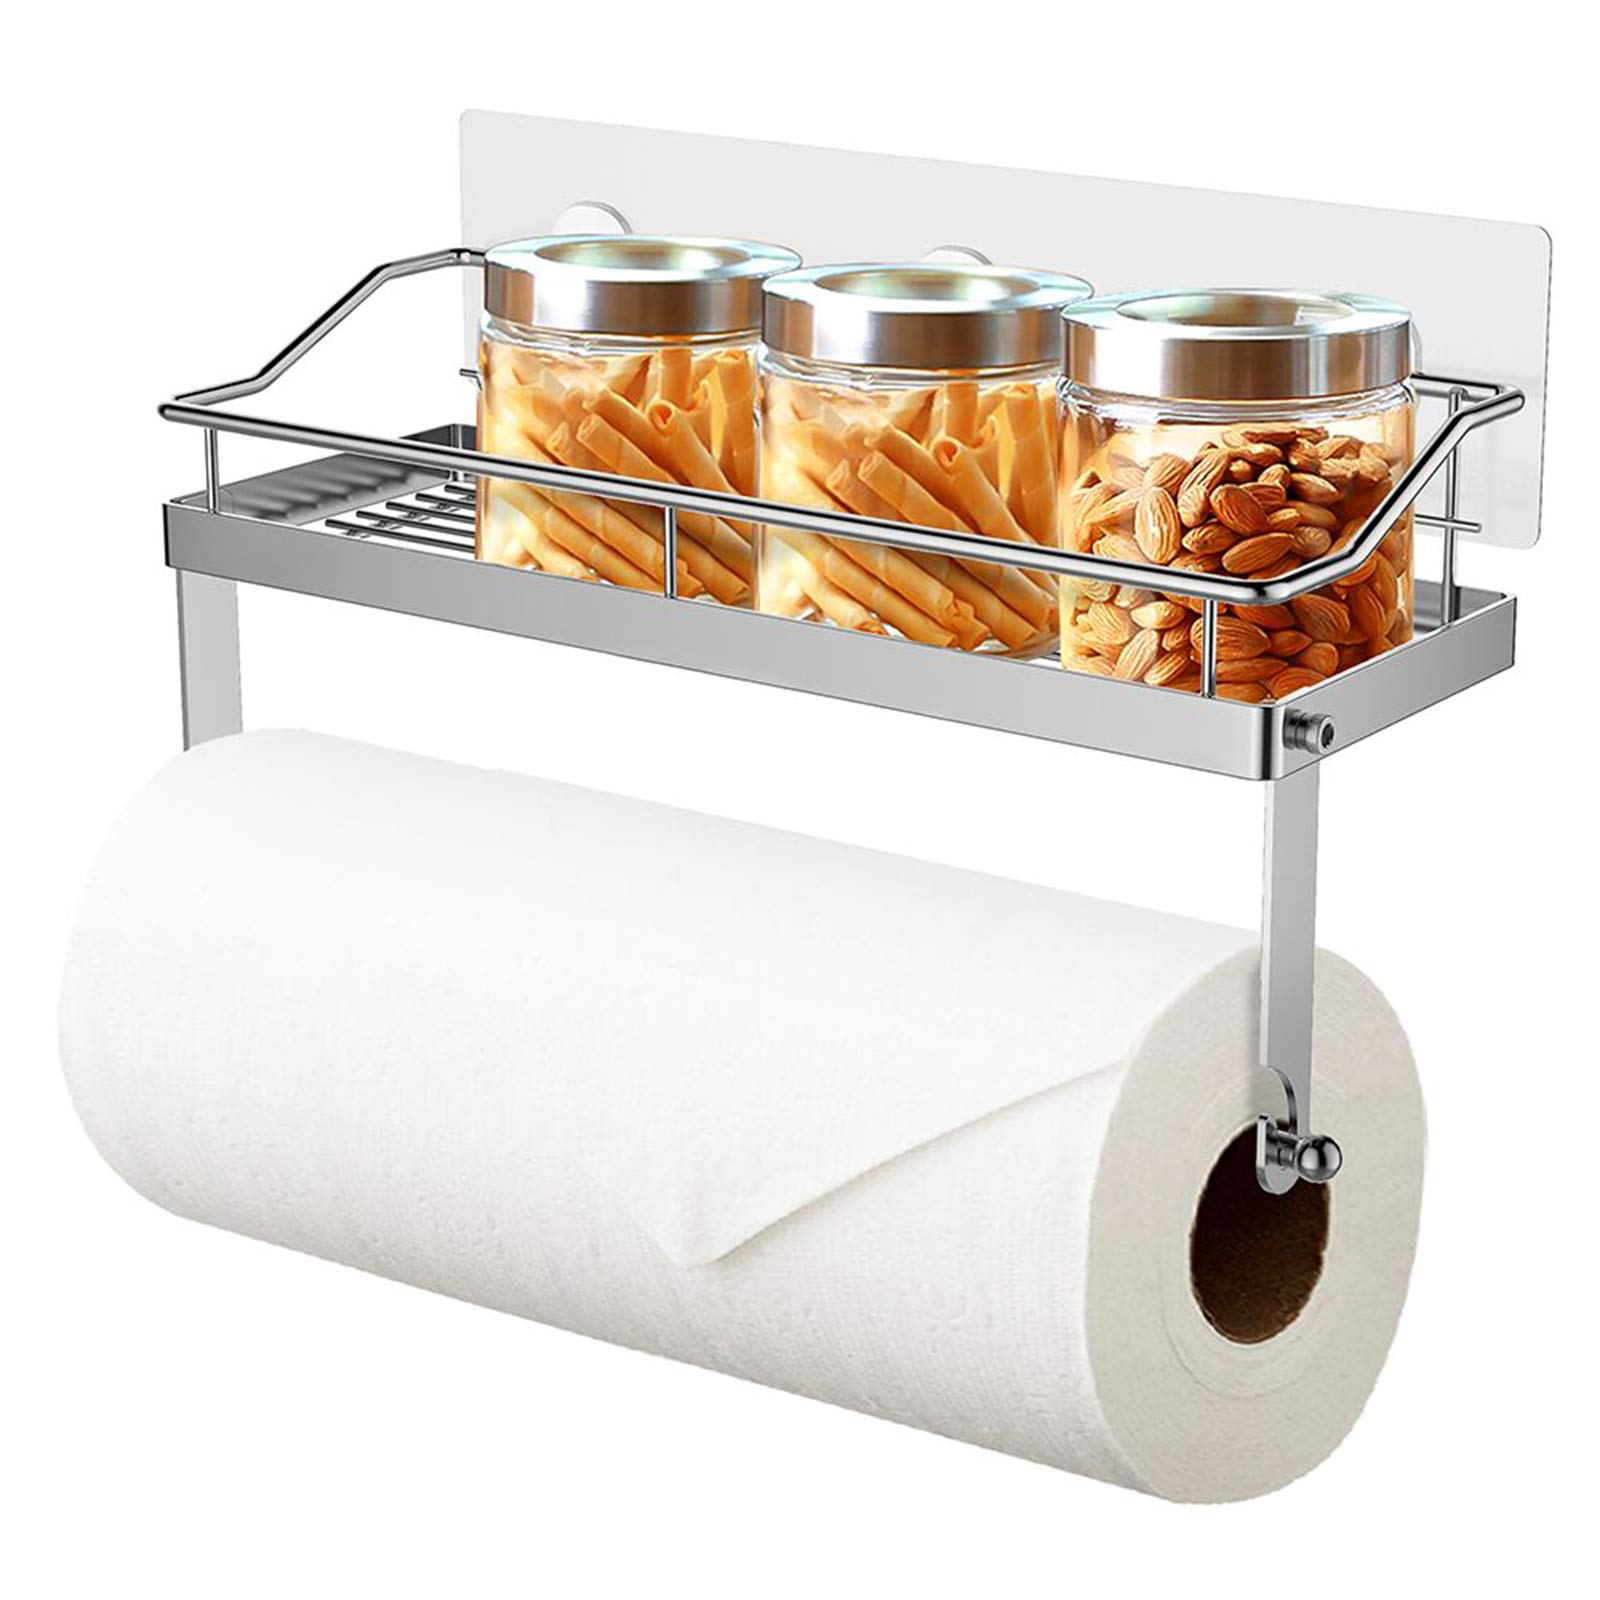 ODesign Paper Towel Holder with Shelf Adhesive Wall Mount 2-in-1 for Kitchen Shower Bathroom Organizer Storage Rustproof SUS304 Stainless Steel - No Drilling